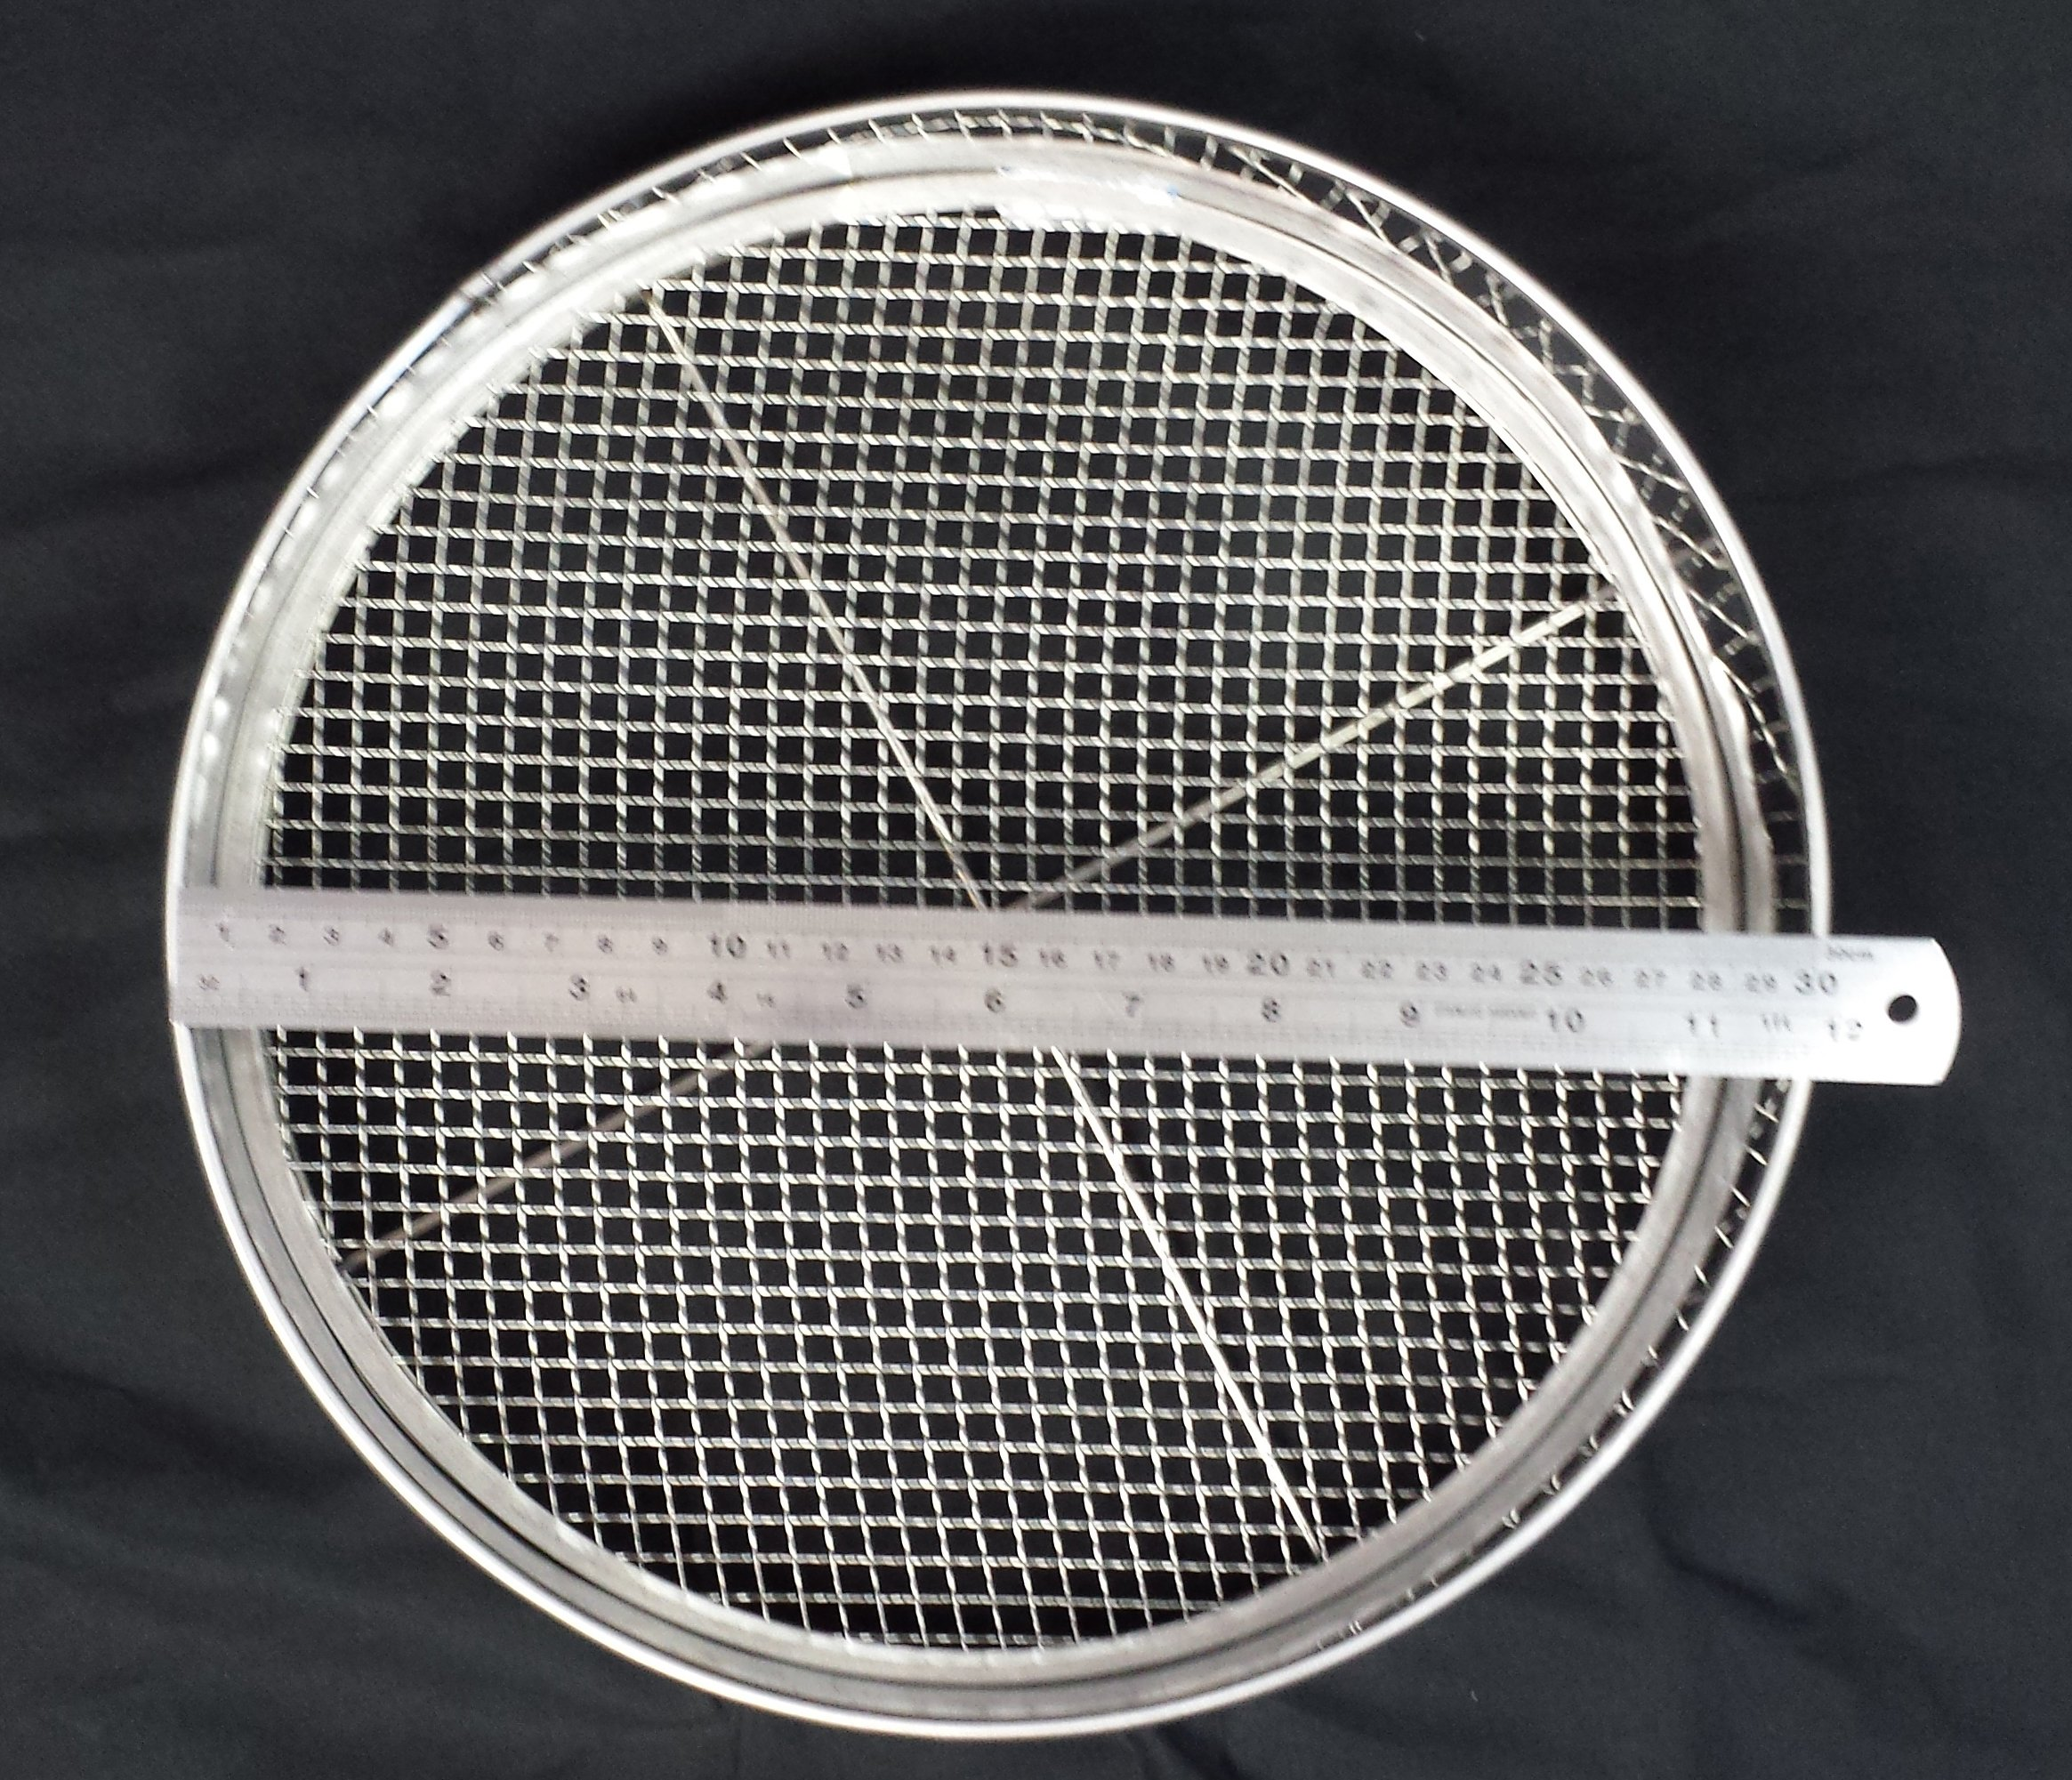 Practicool Garden Potting Mesh Sieve - Sifting Pan - Stainless Steel Riddle - Mix Soil Filter - with 4 Interchangeable Mesh Sizes - 3, 6, 9, 12mm by Practicool Products